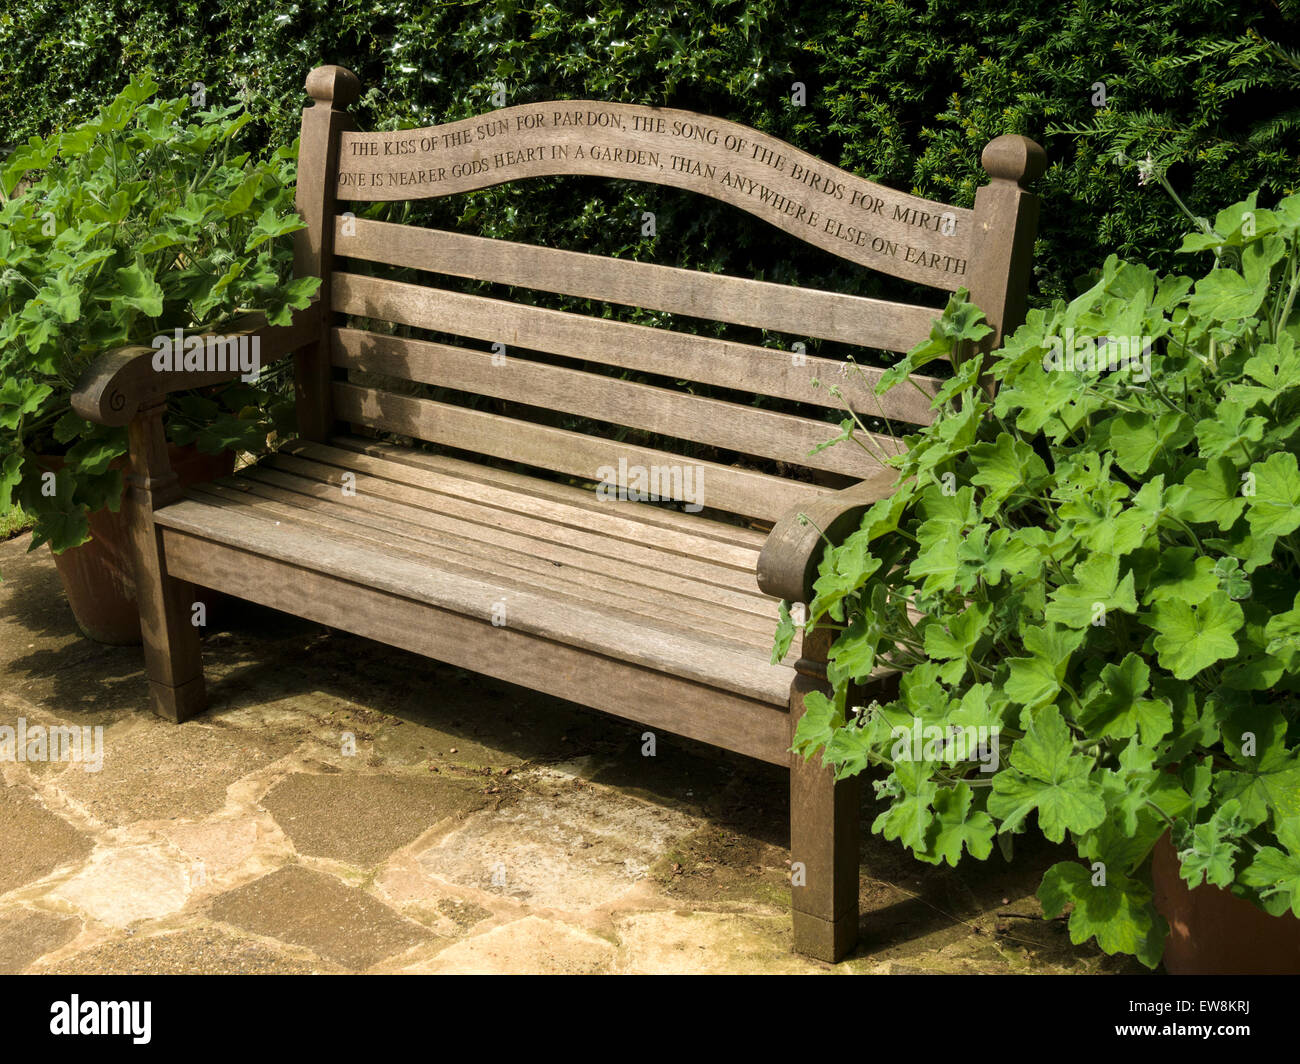 Wooden Park Bench Garden Seat With Poetry Inscription From Gods